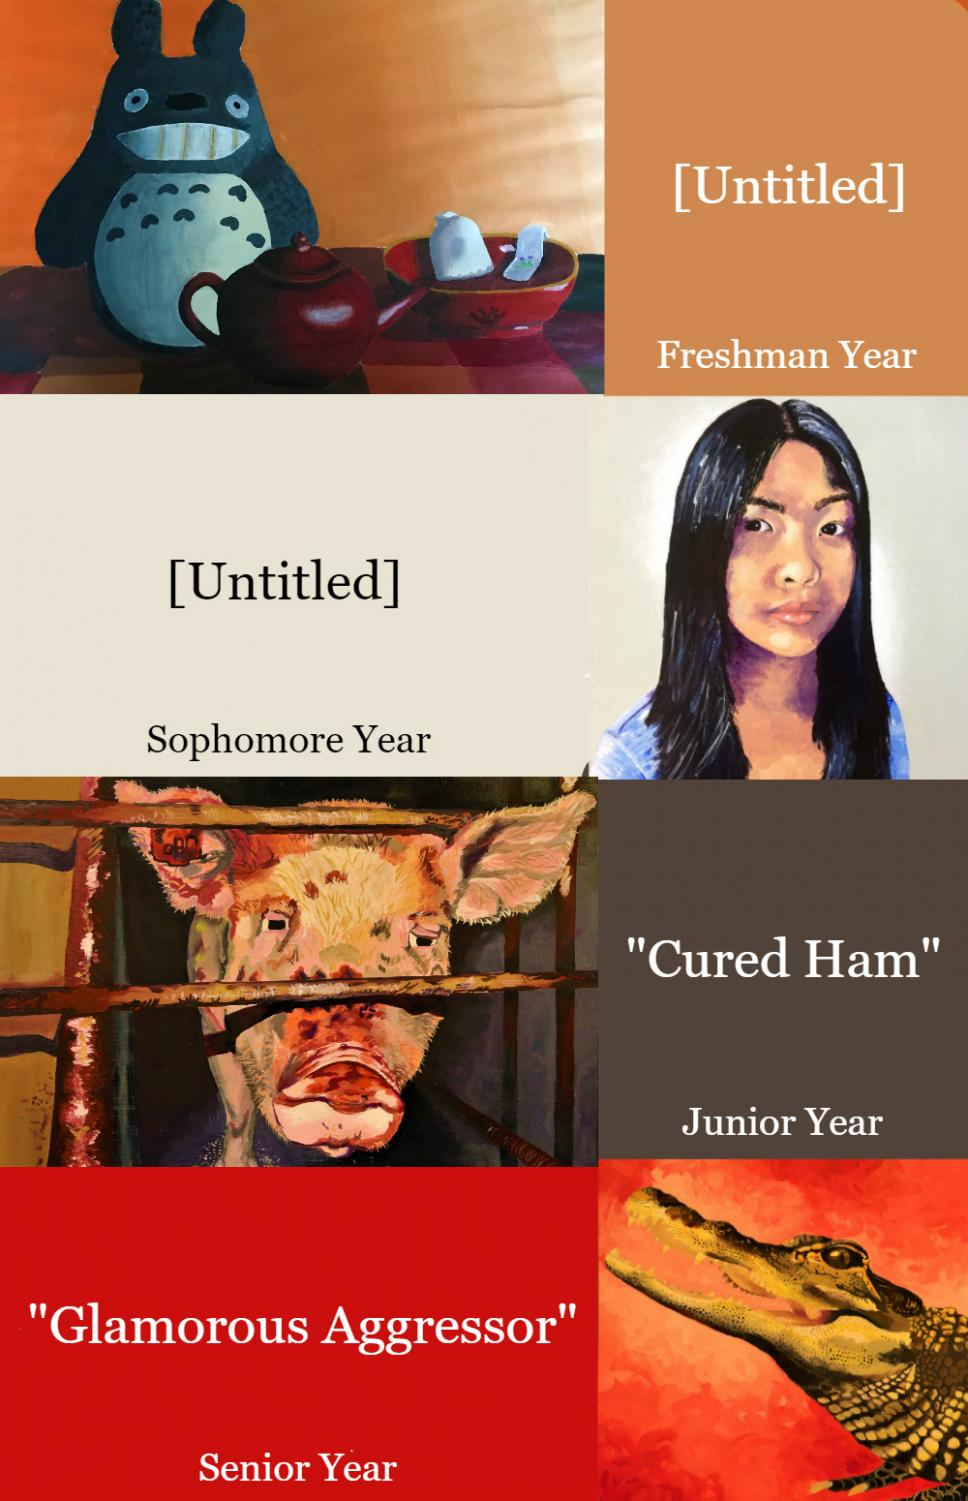 Artist Emily Lew '18 showcases her work from freshman to senior year. Lew's paintings are inspired by a passion for animal activism, as evident in